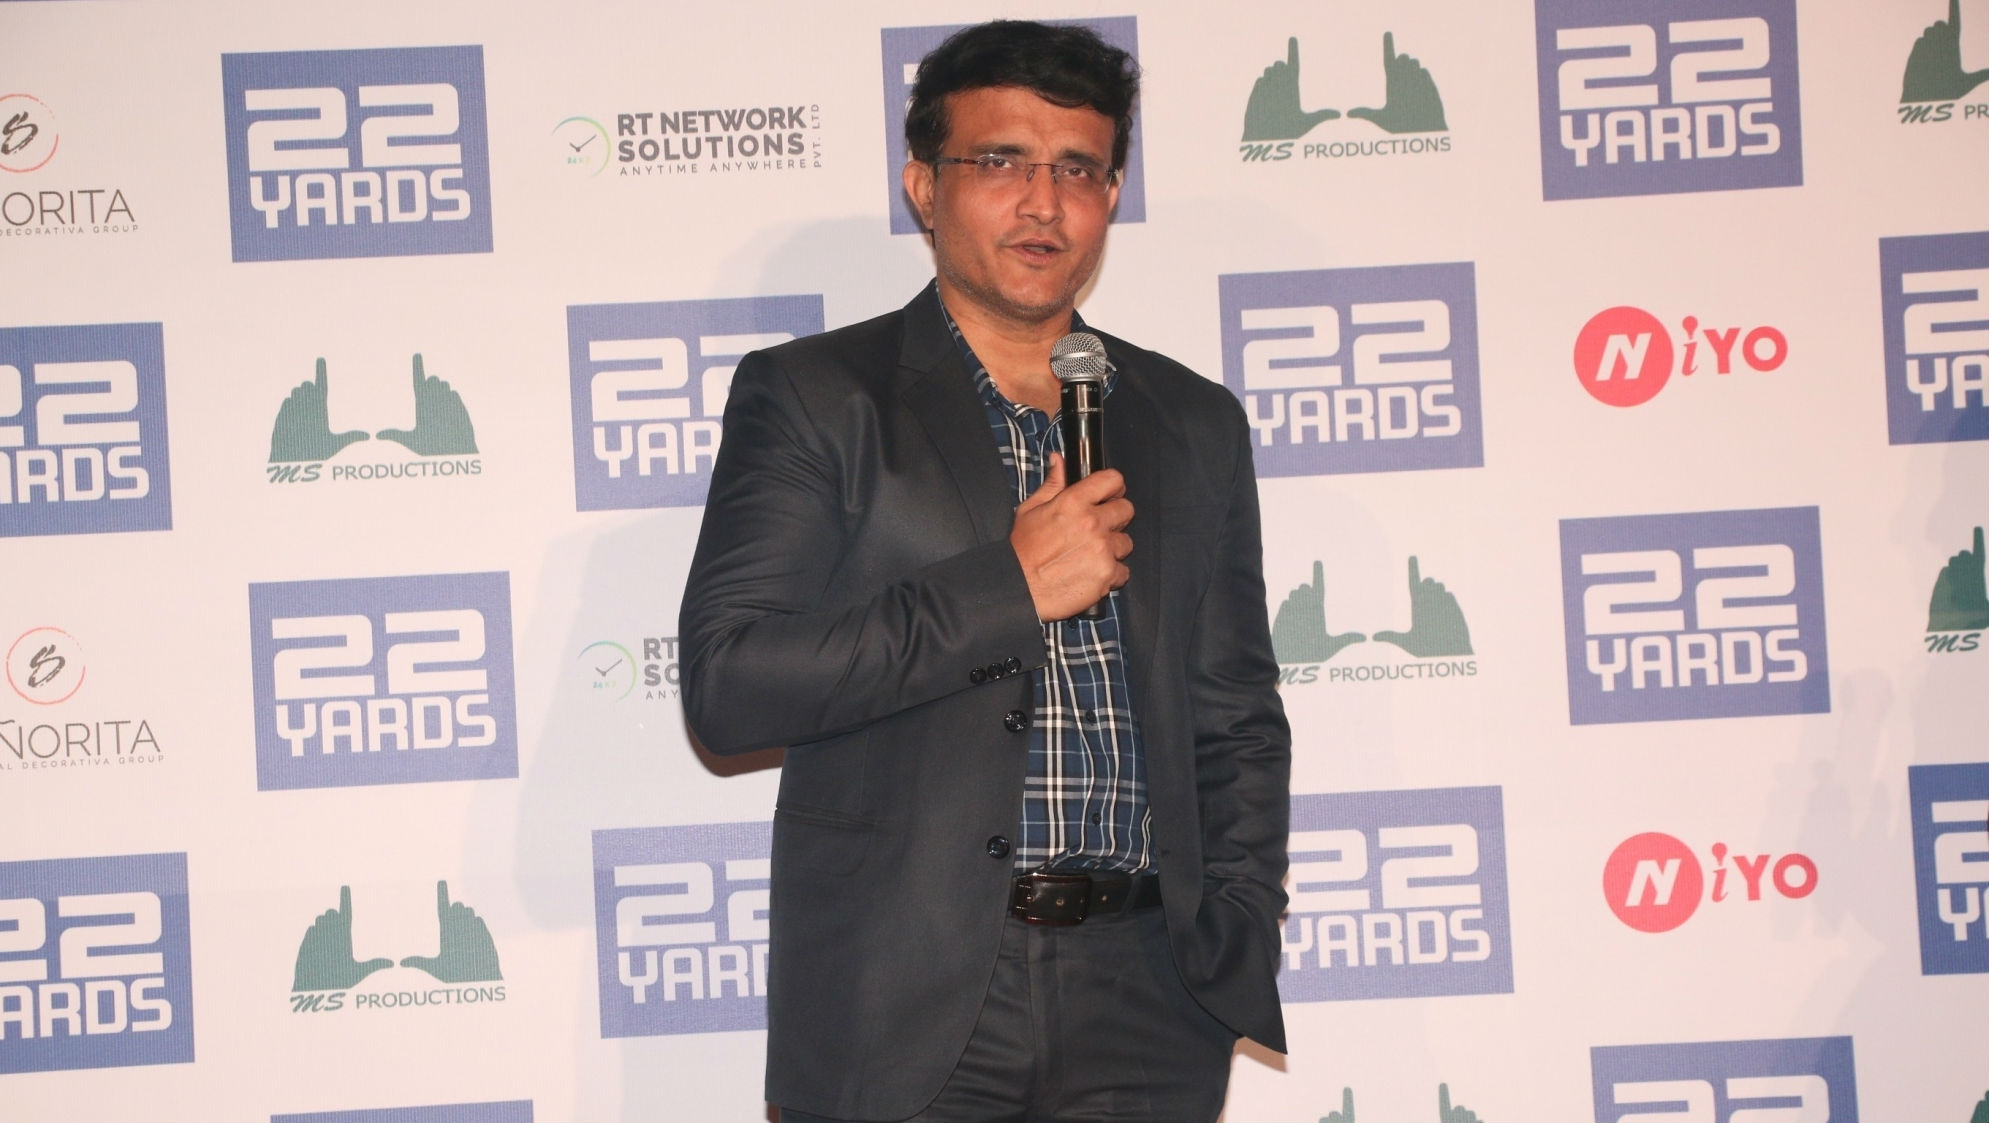 New BCCI Boss Sourav Ganguly Has a Hilarious Reply up His Sleeve When Asked About Ravi Shastri